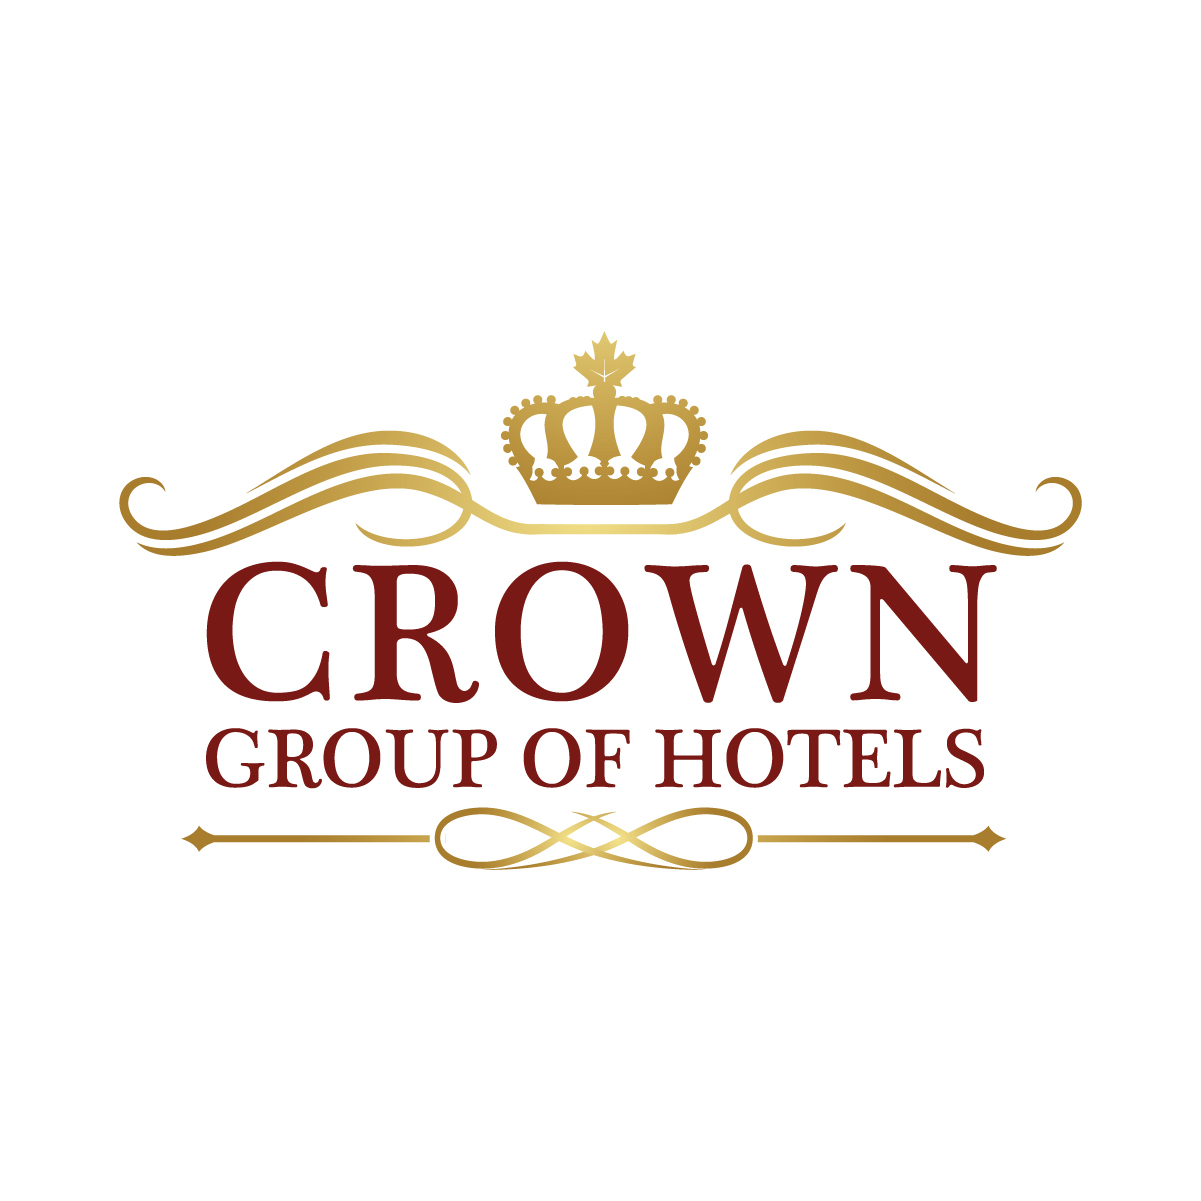 Crown Group of Hotels Logo 01